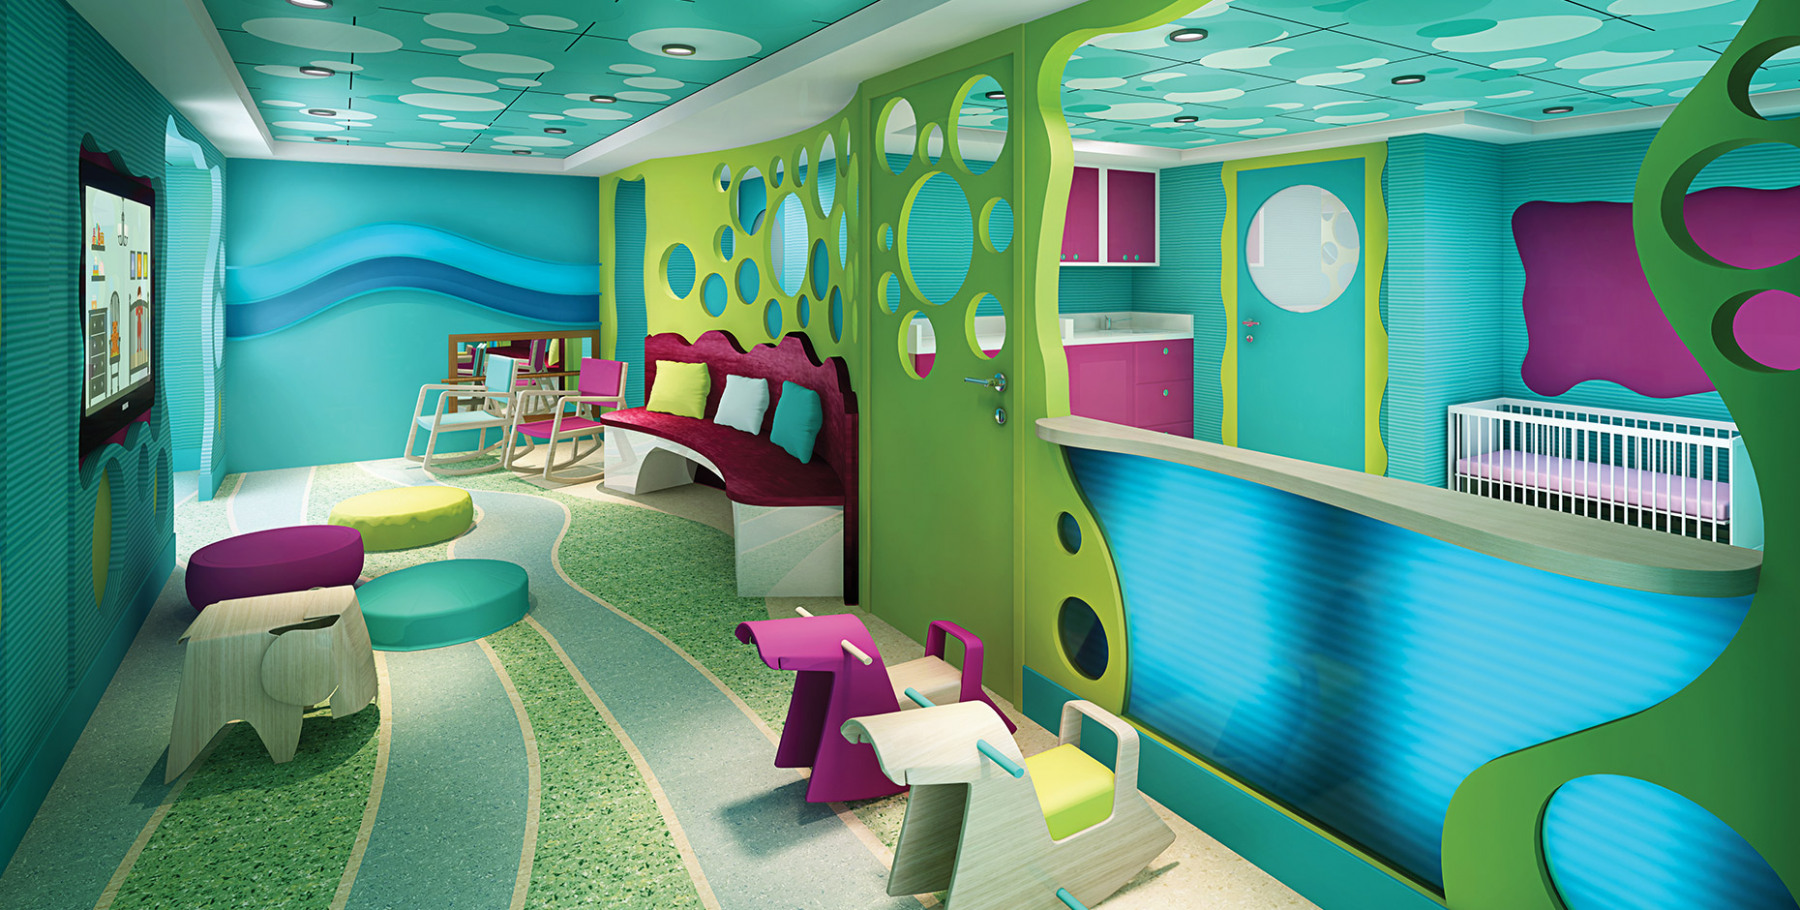 Norwegian Escape Guppies kids nursery.jpg